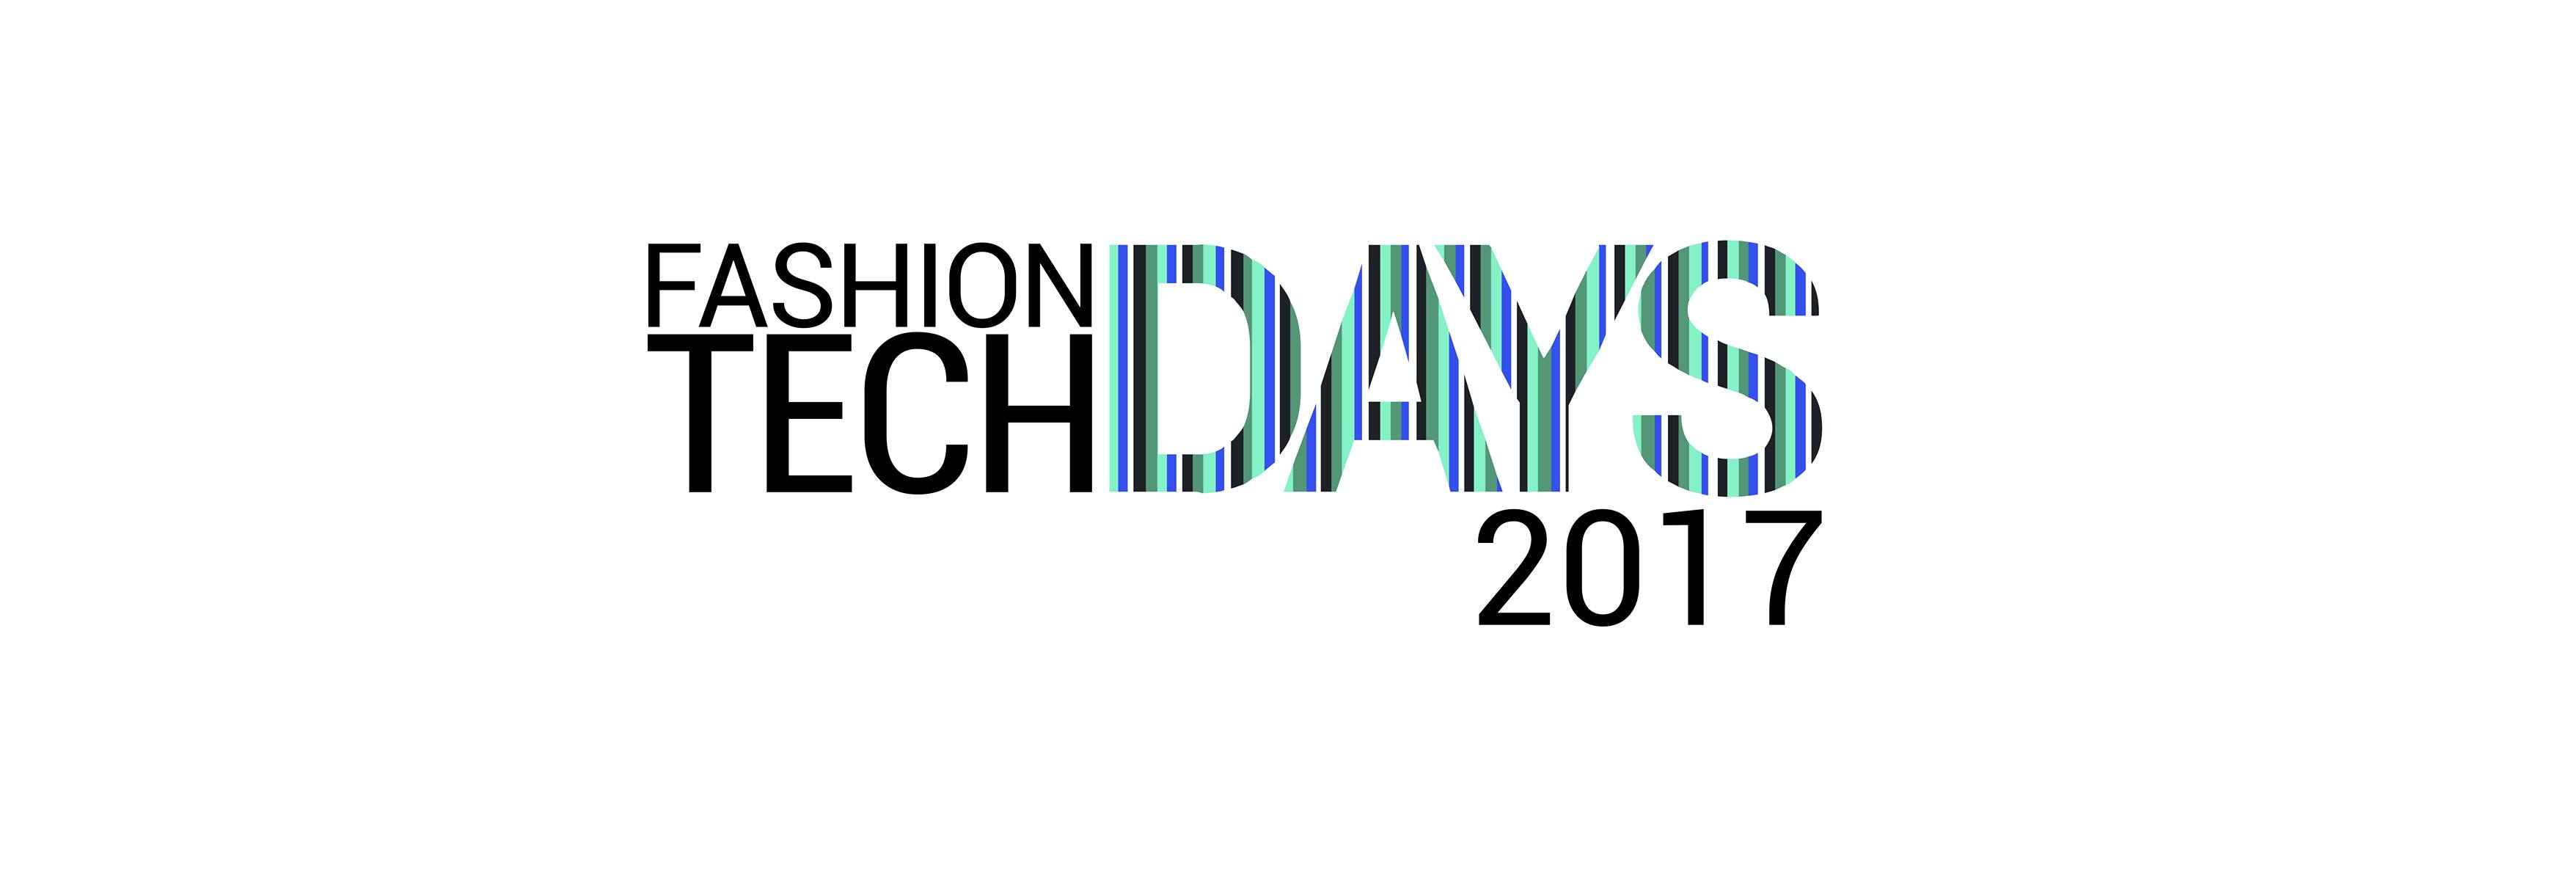 Fashion Tech Days 2017 Roubaix